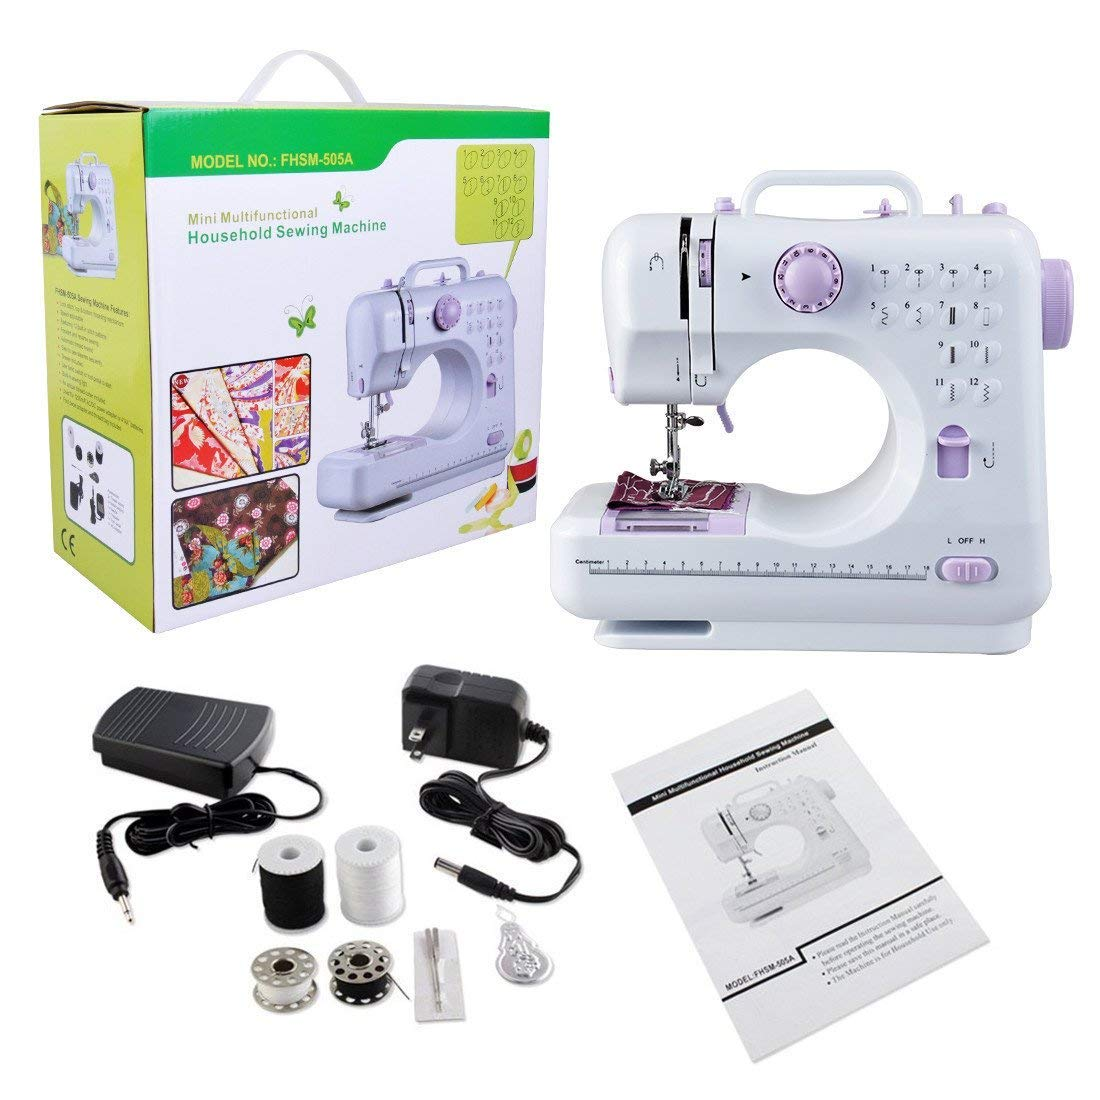 Sewing Machine with Built-In 12 Stitches Household Sewing Machine Handheld Portable with Foot Pedal 2 Speed Double Threads